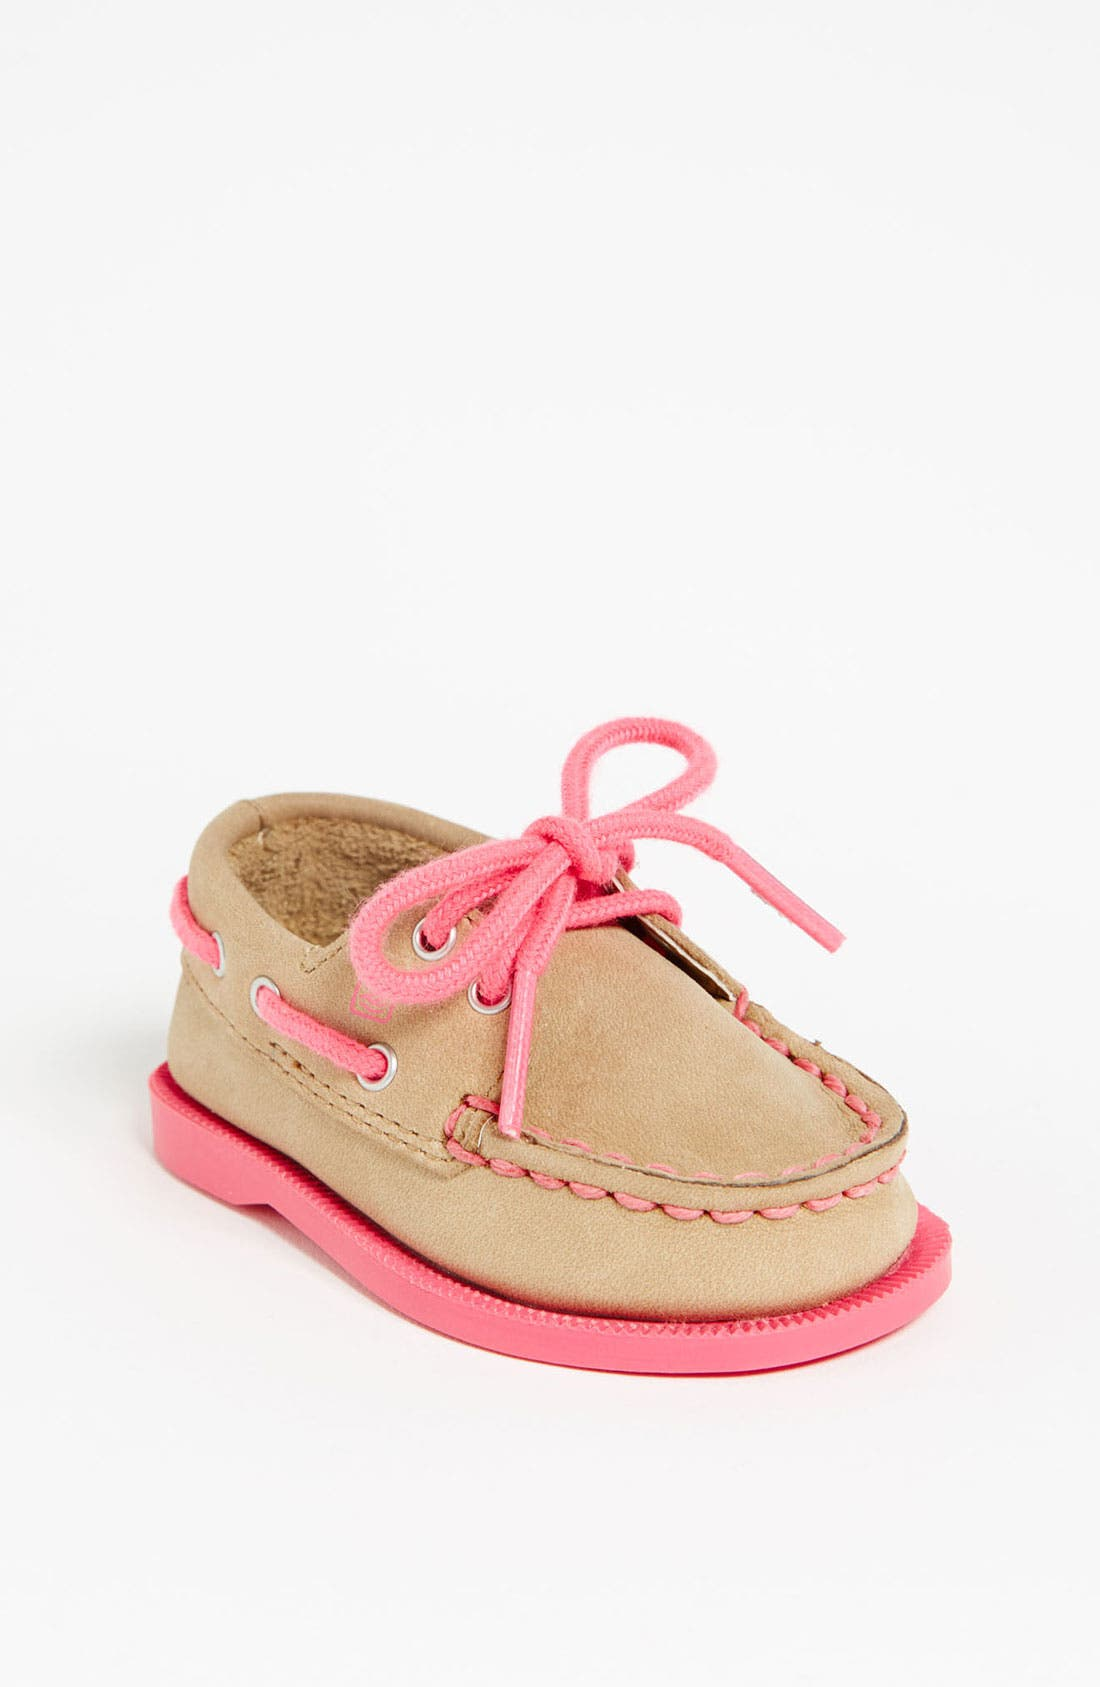 Sperry Top-Sider<sup>®</sup> Kids 'Authentic Original' Crib Shoe,                         Main,                         color,